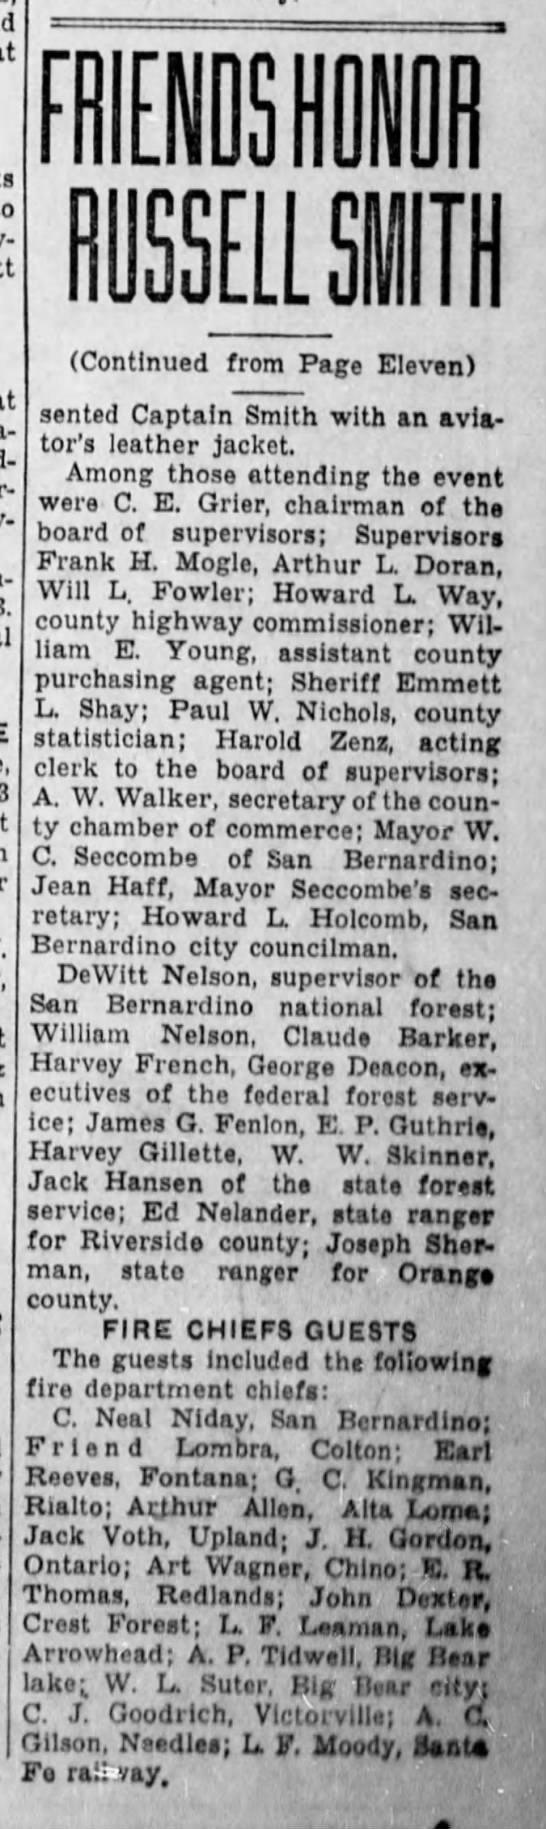 1942-4-26 Friends Honor Russel Smith Pg. 2 -